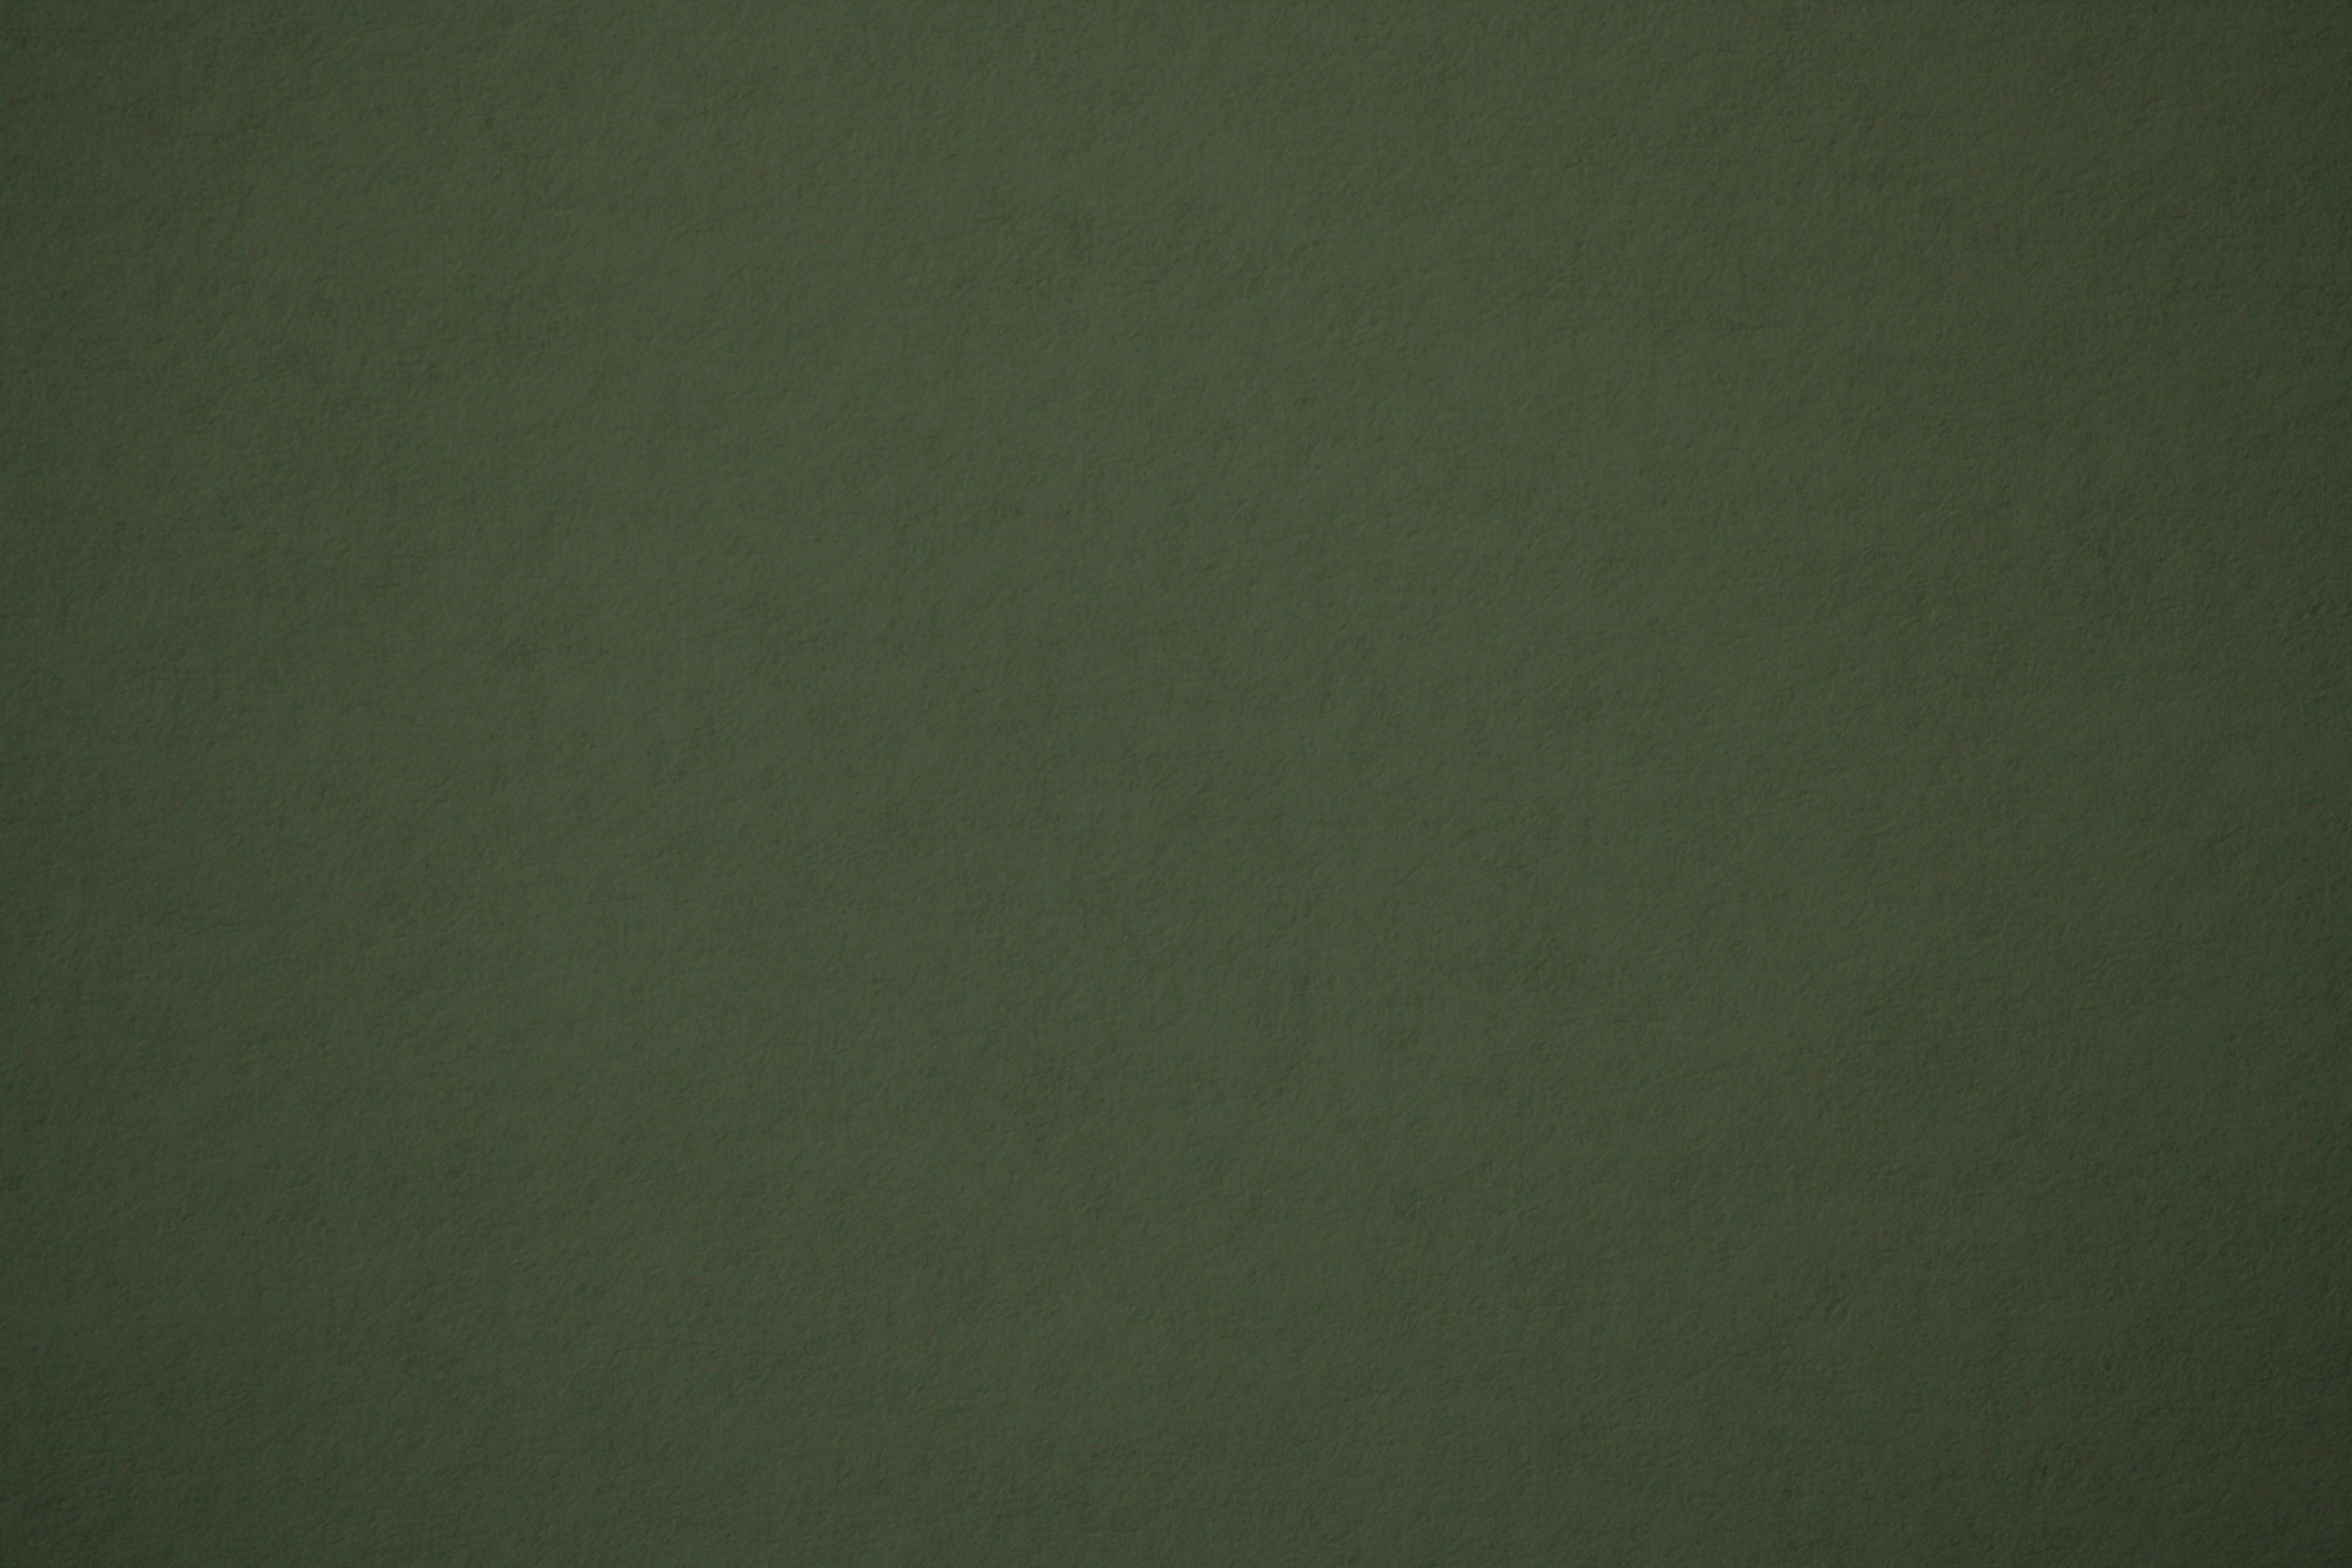 Olive Green Paper Texture Picture Free Photograph